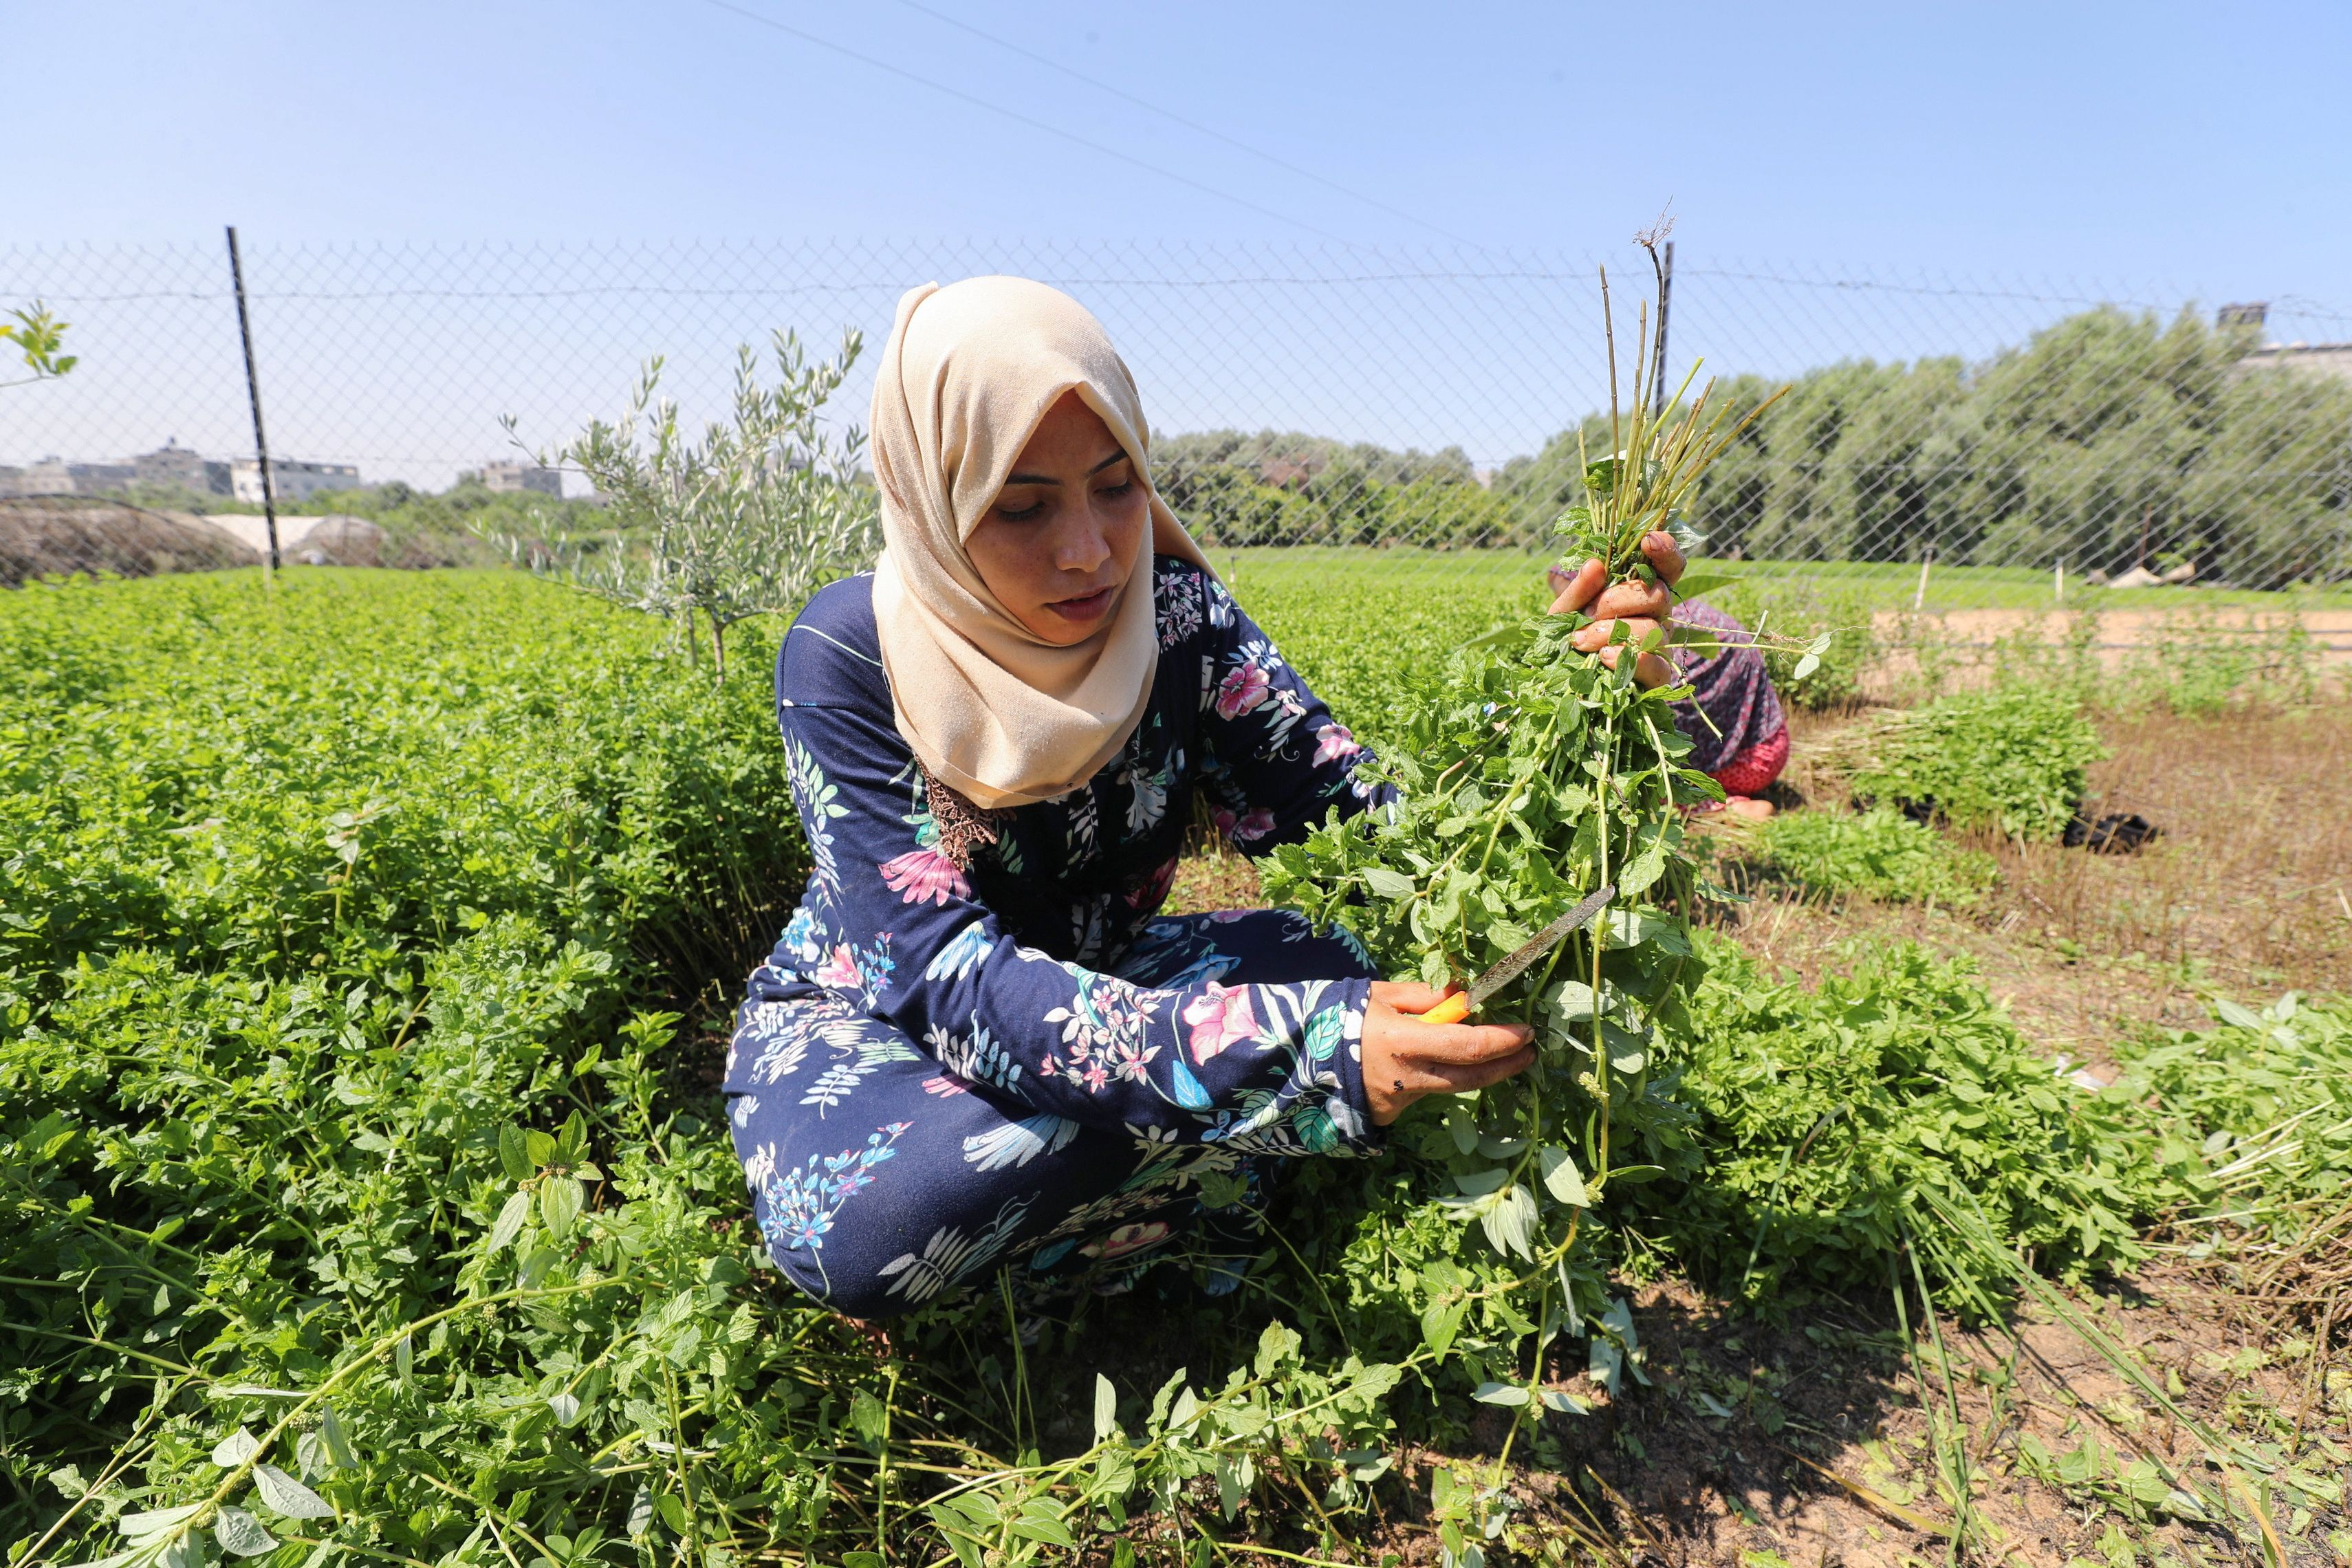 A Palestinian woman cuts mint in her family land, in Beit Lahiya town in the northern Gaza Strip July 28, 2021. Picture taken July 28, 2021. REUTERS/Mohammed Salem